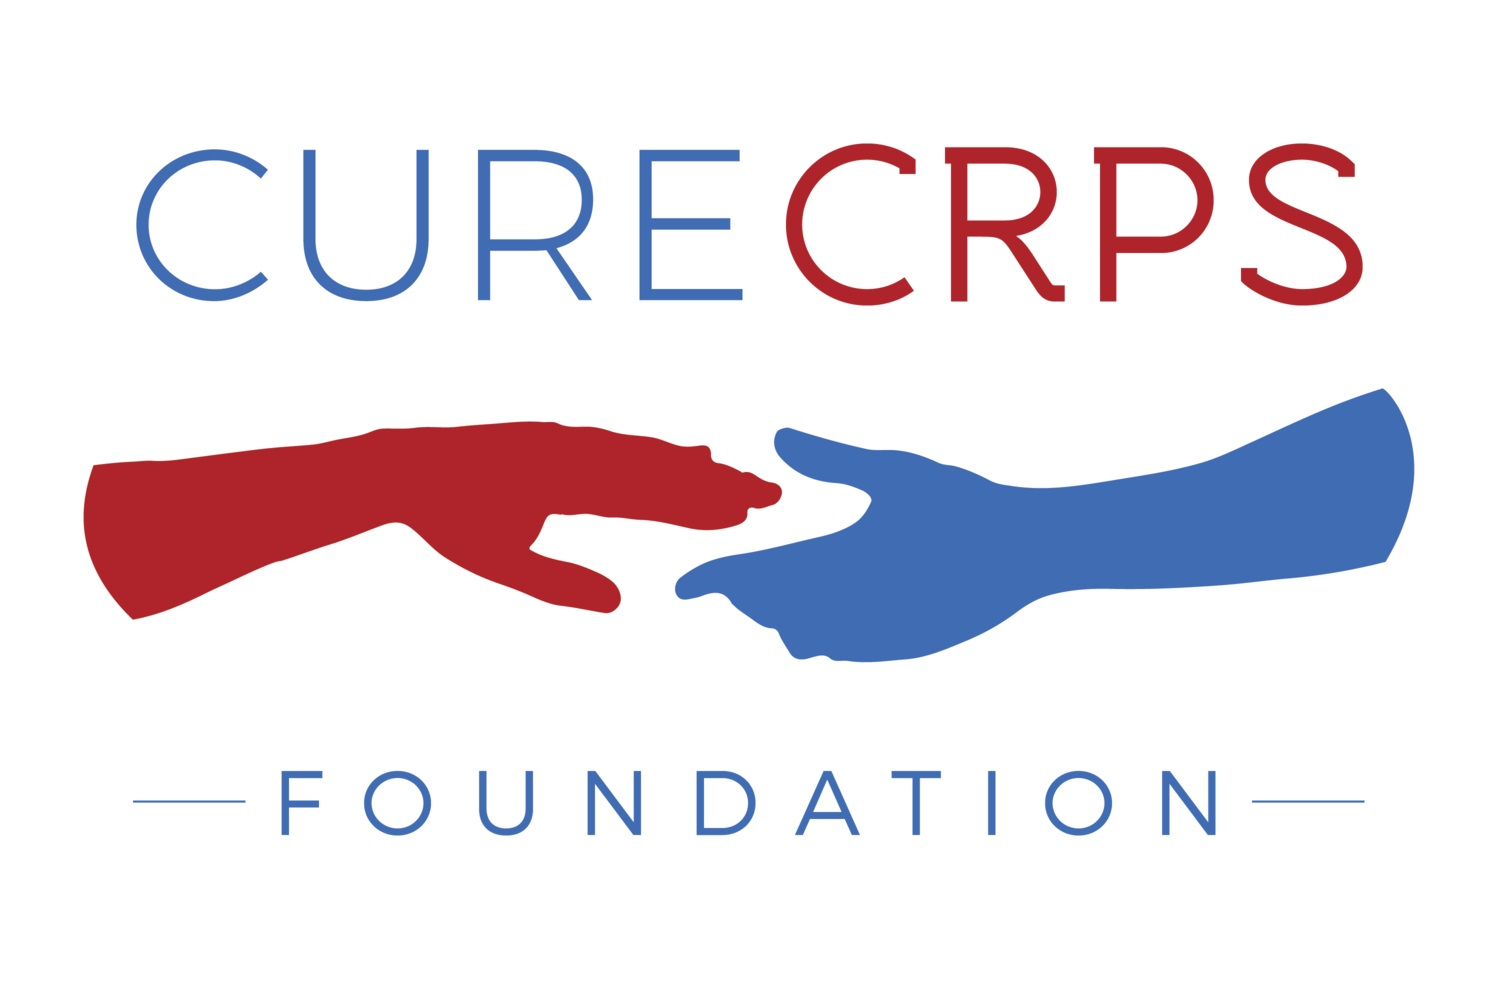 CureCRPS-new-logo-type-optimized.png